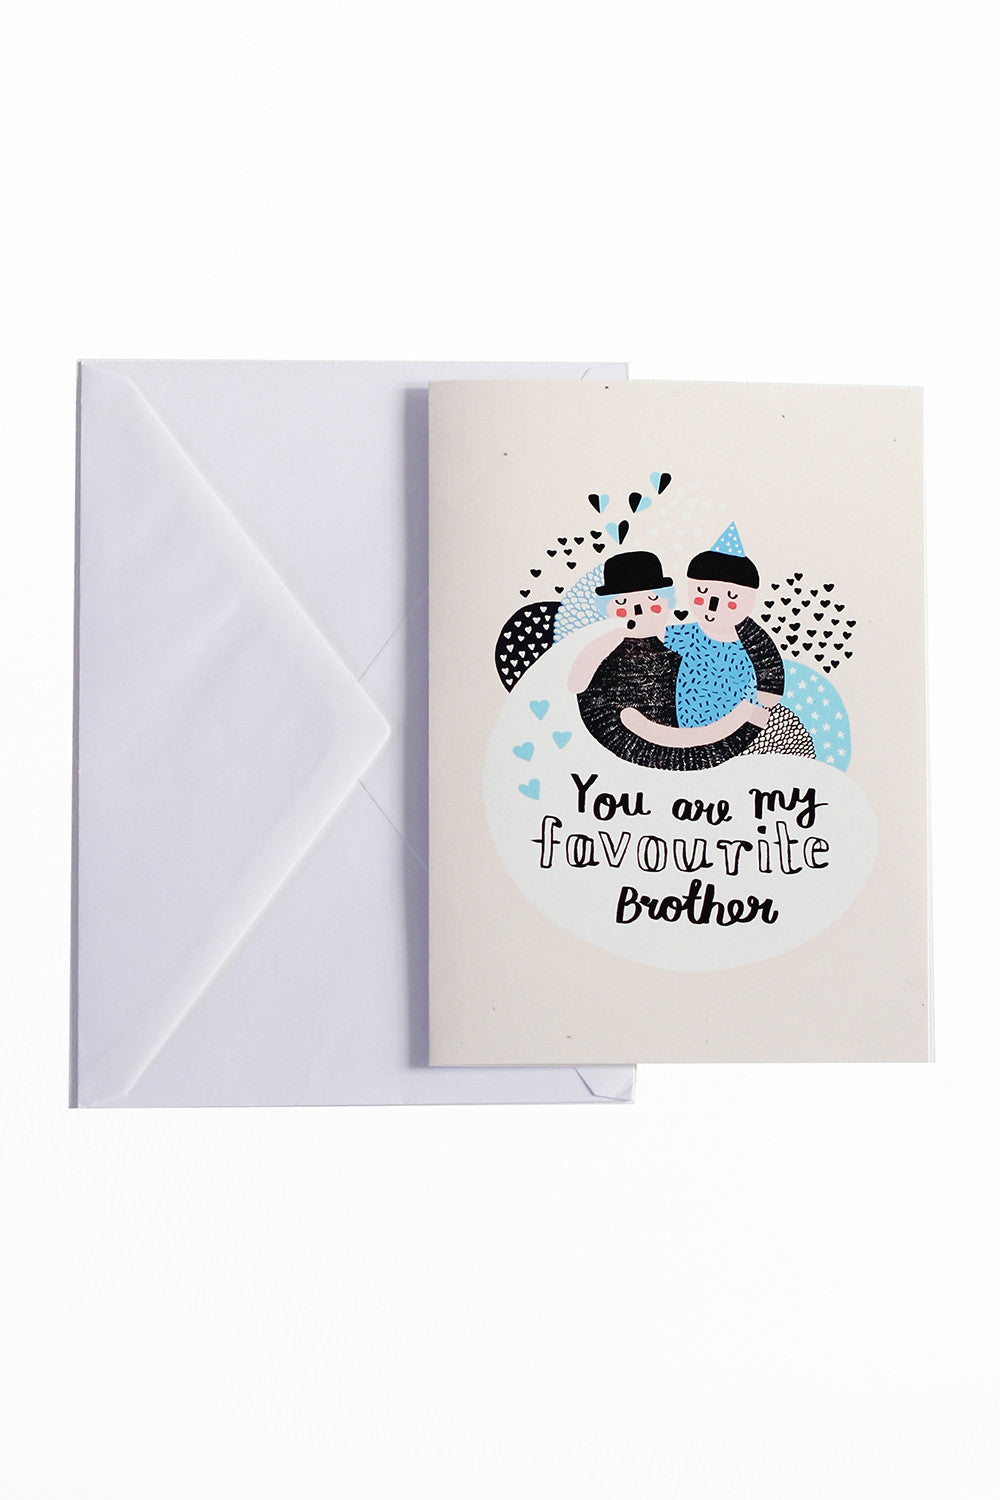 Favorite Brother - cards